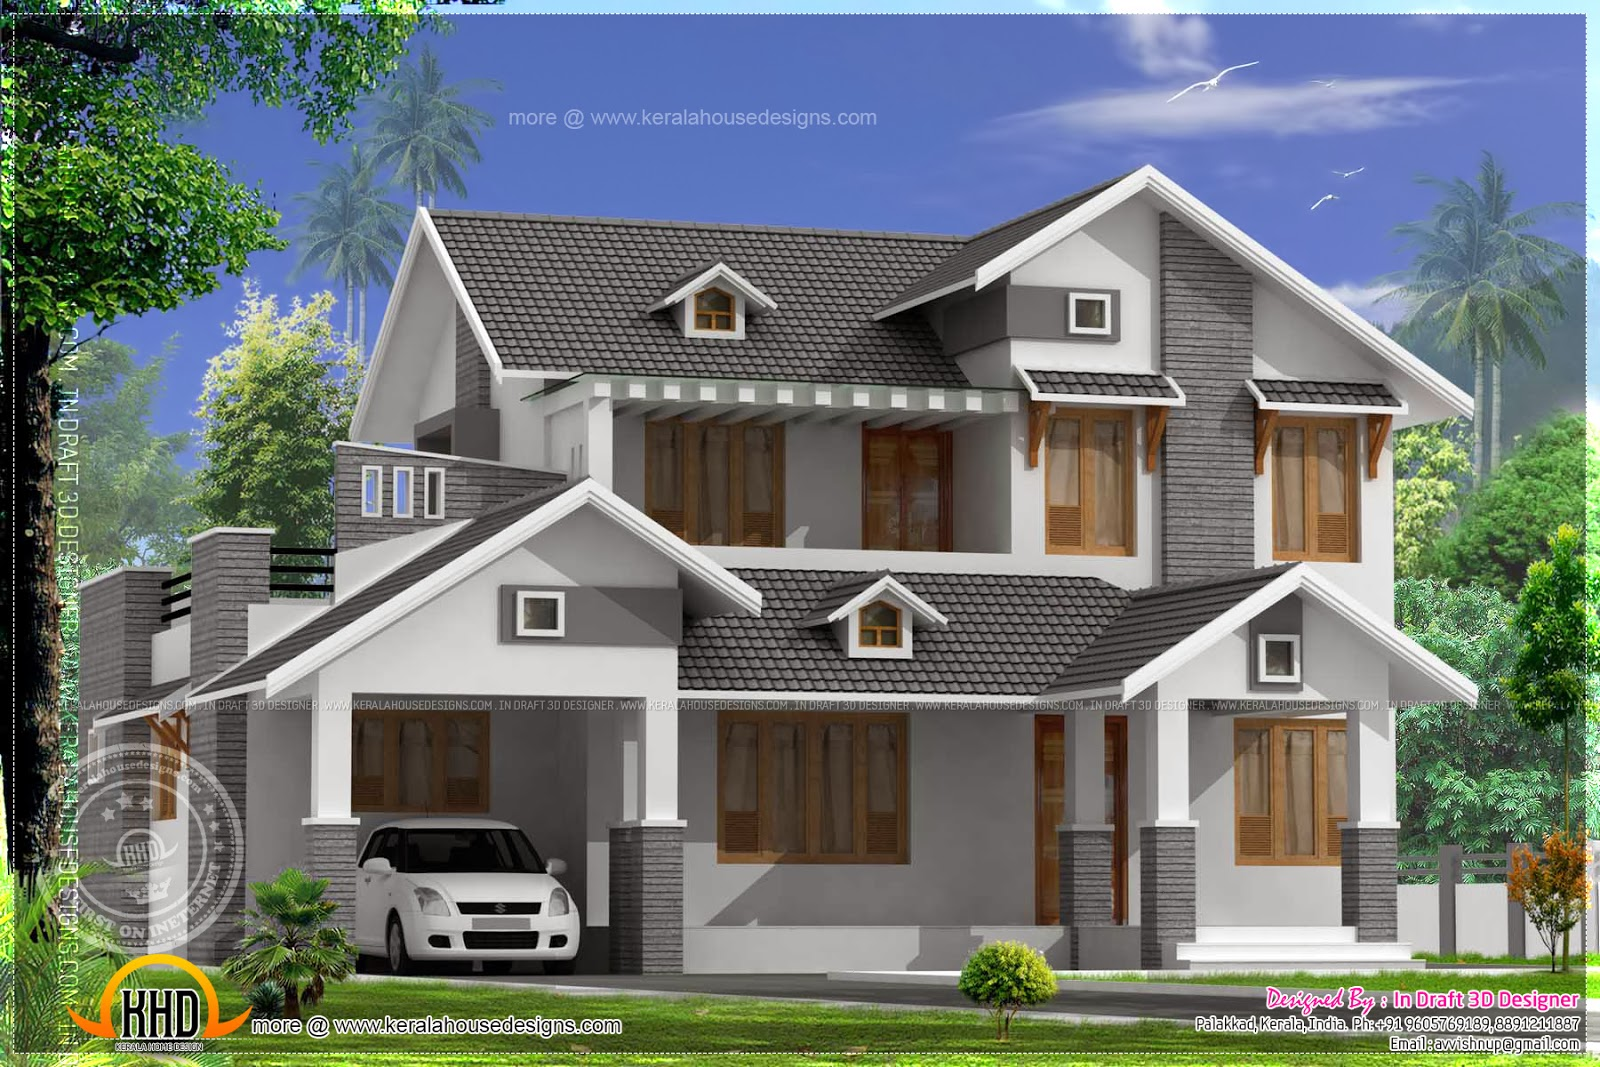 Pitched roof house designs for Pitched roof design plans